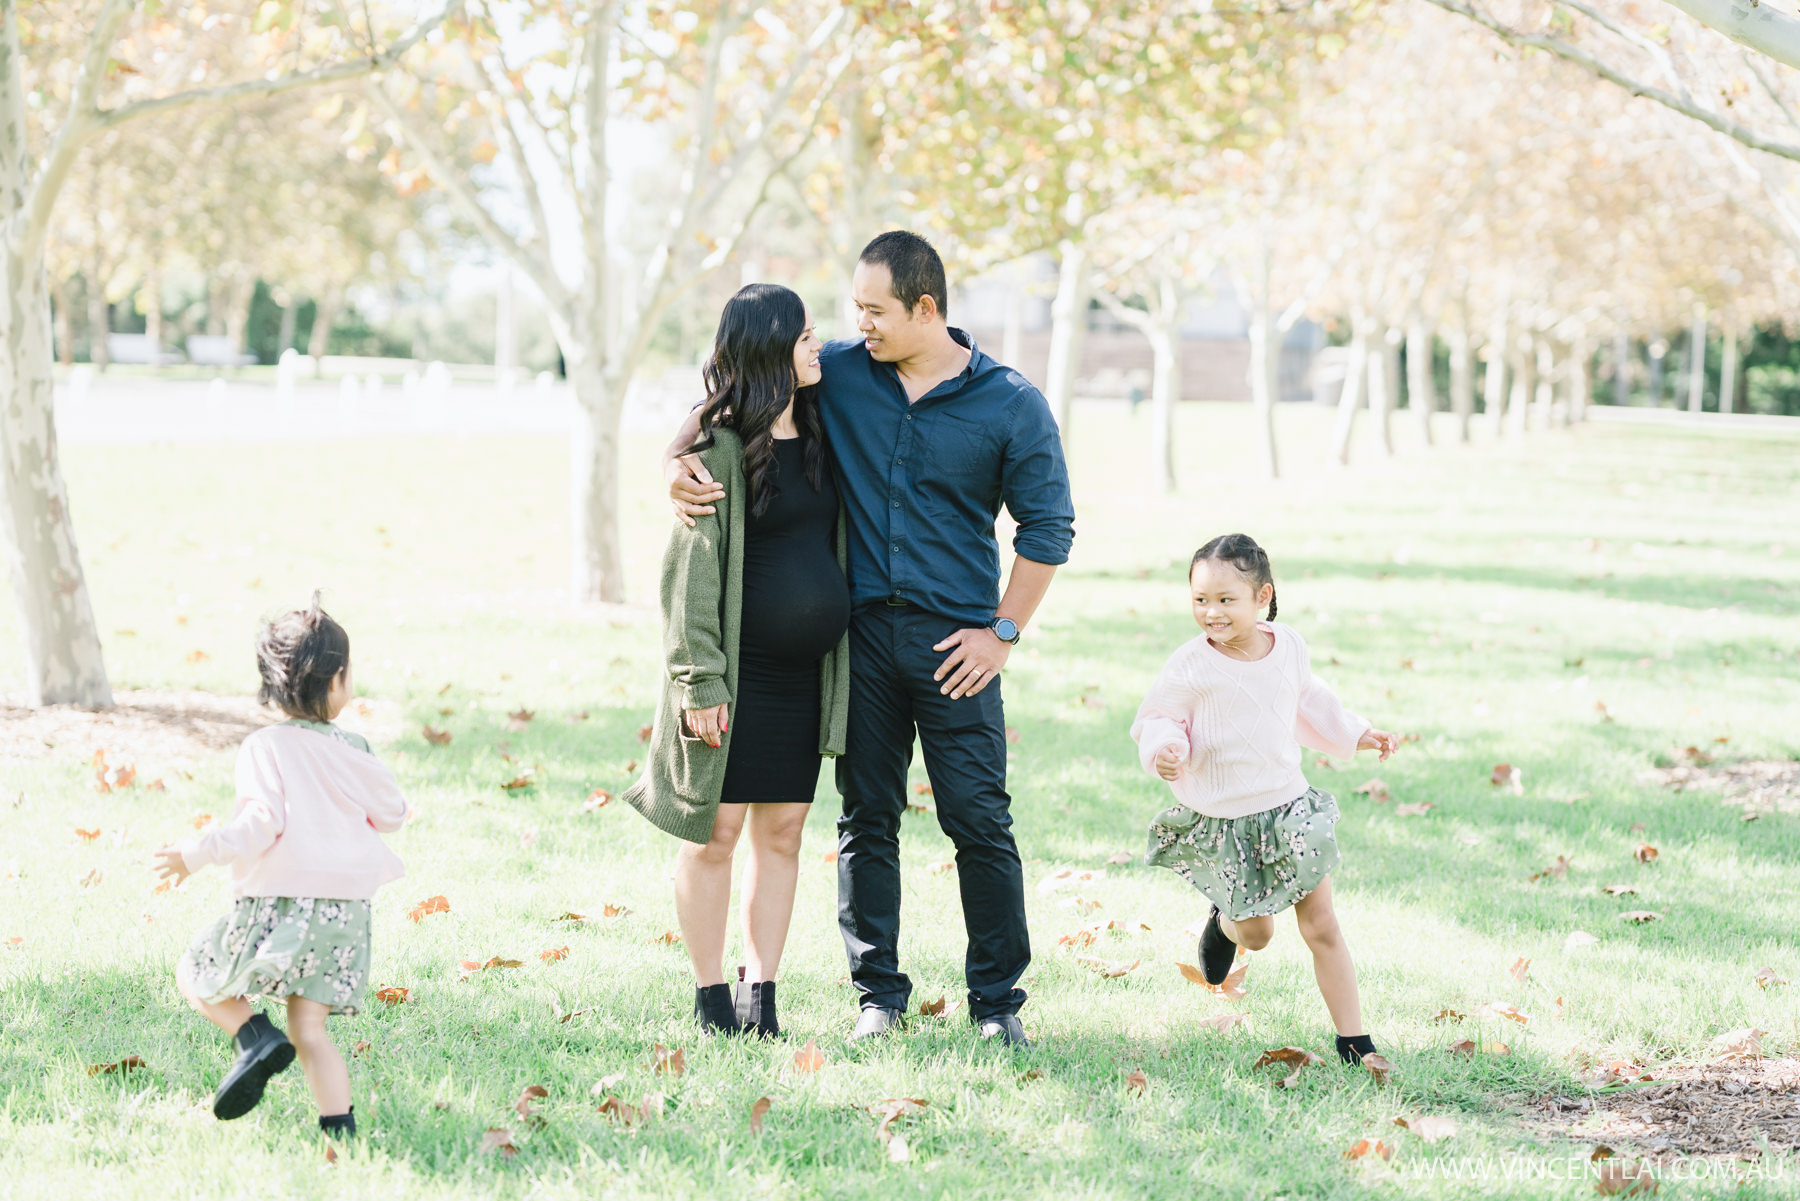 Autumn Lifestyle Outdoor Family Portrait Photography